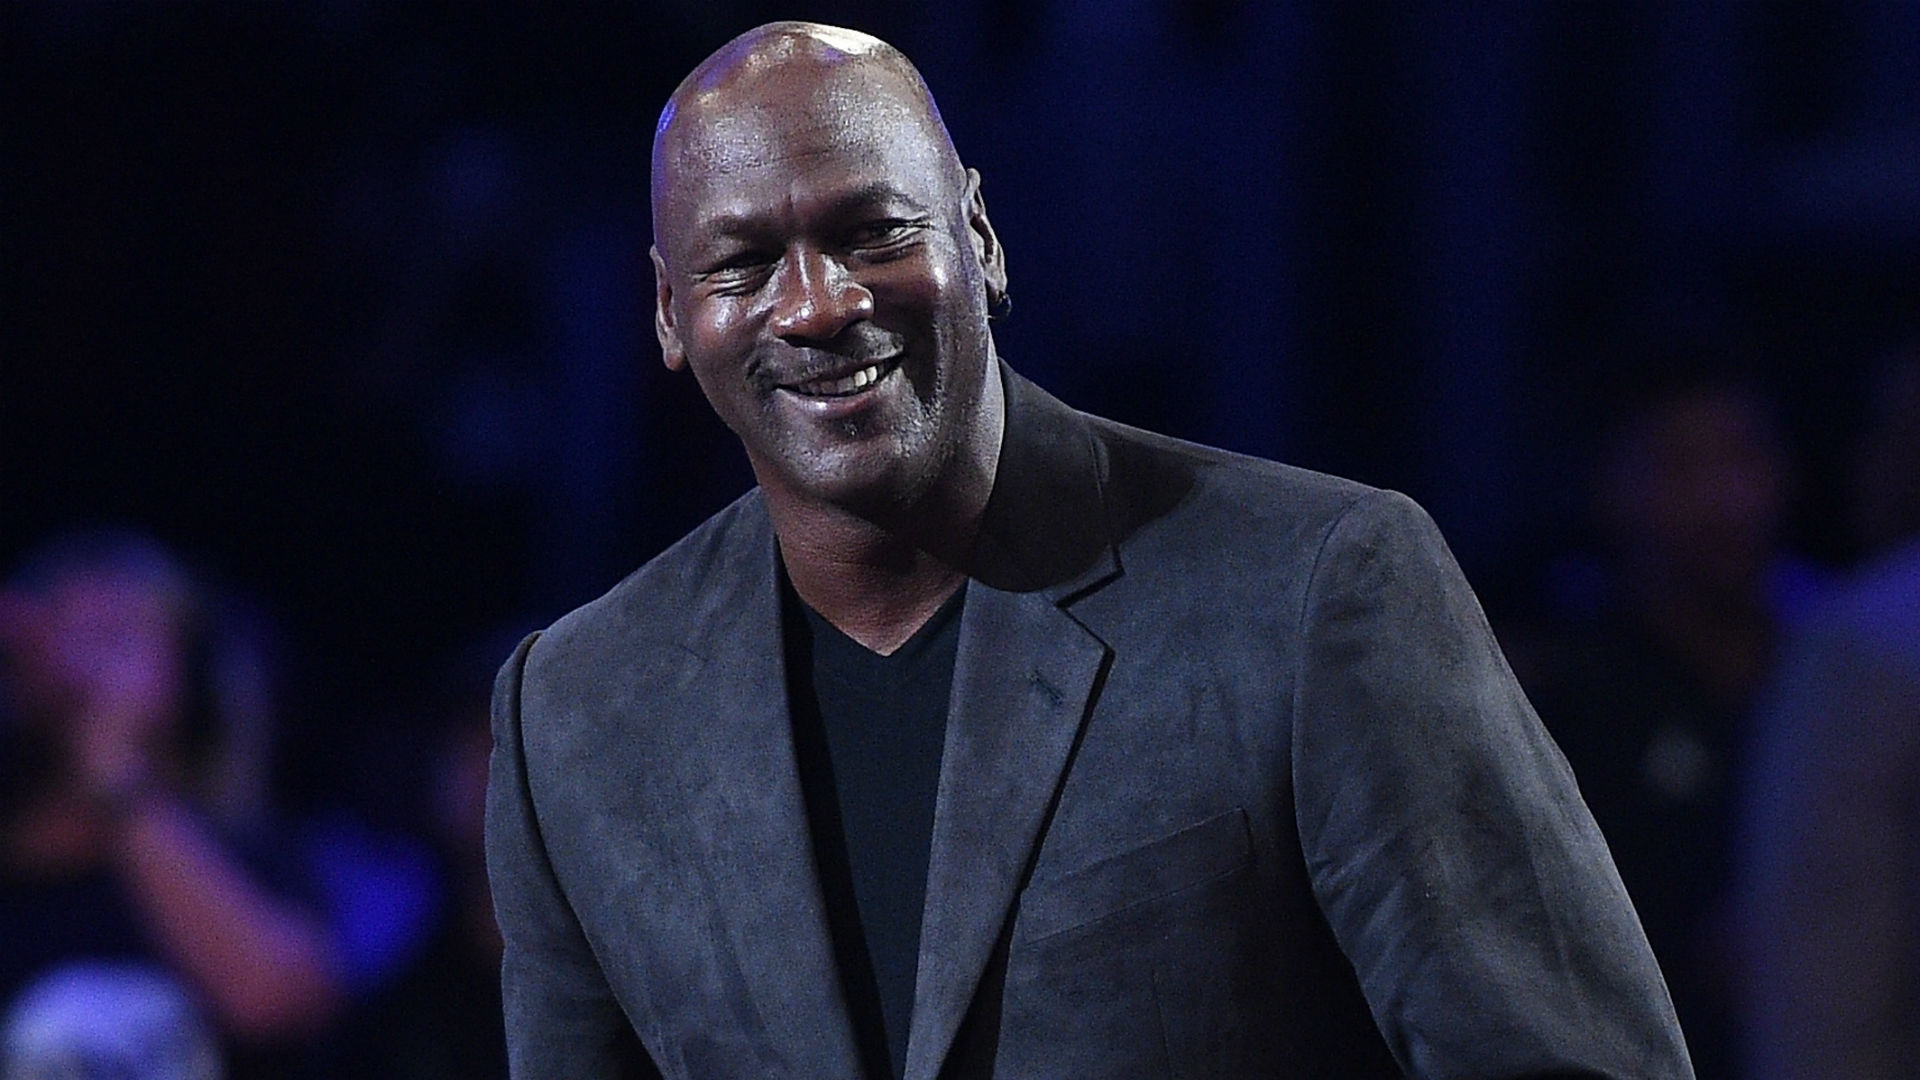 Michael Jordan: Six championships harder than streaks